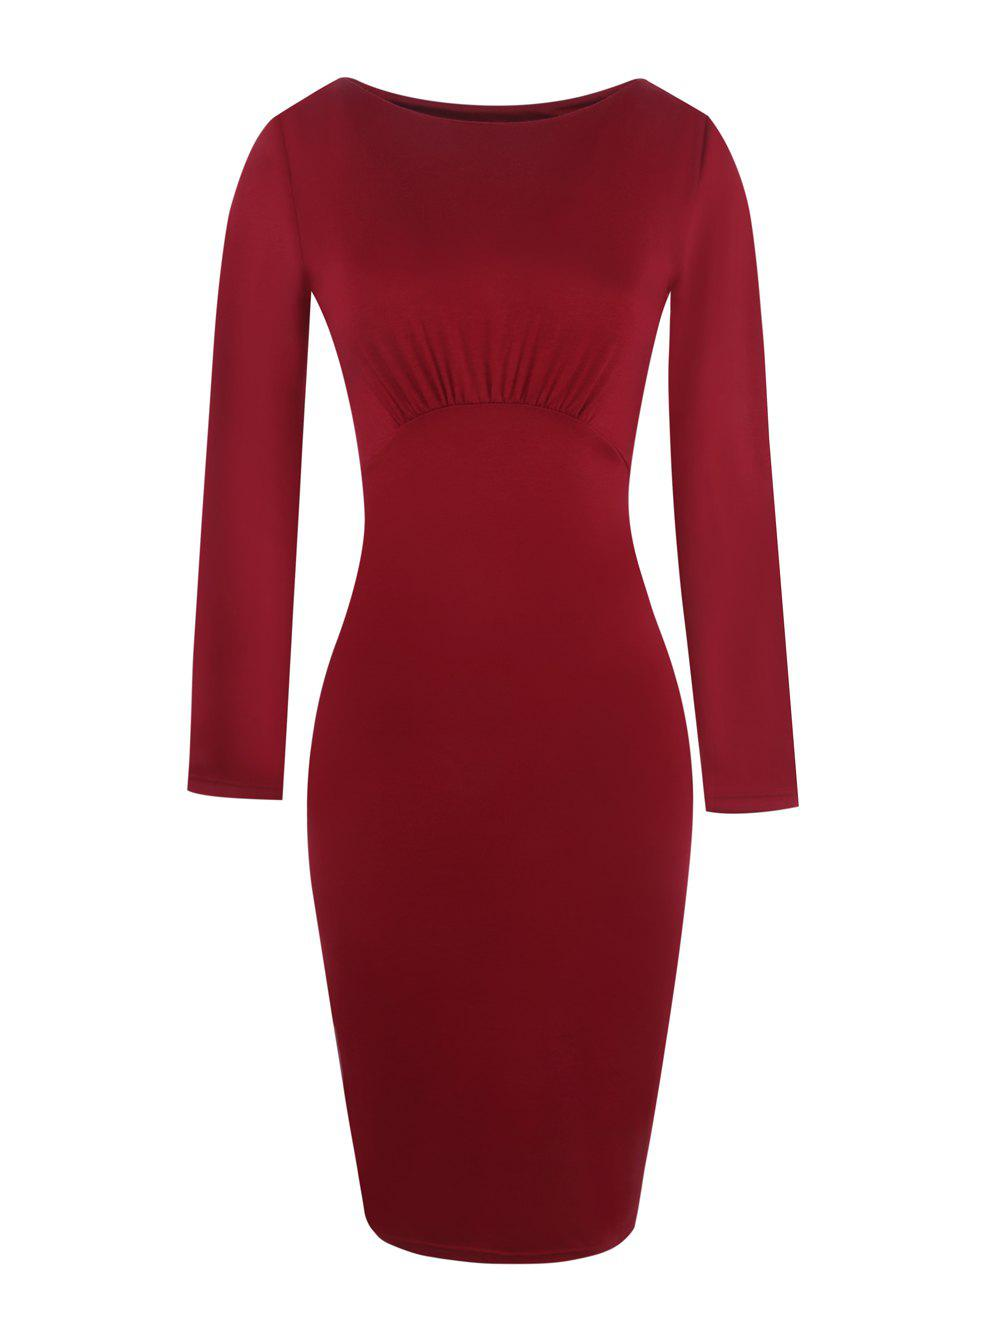 Store Round Neck Long Sleeves Ruffled Pencil Dress